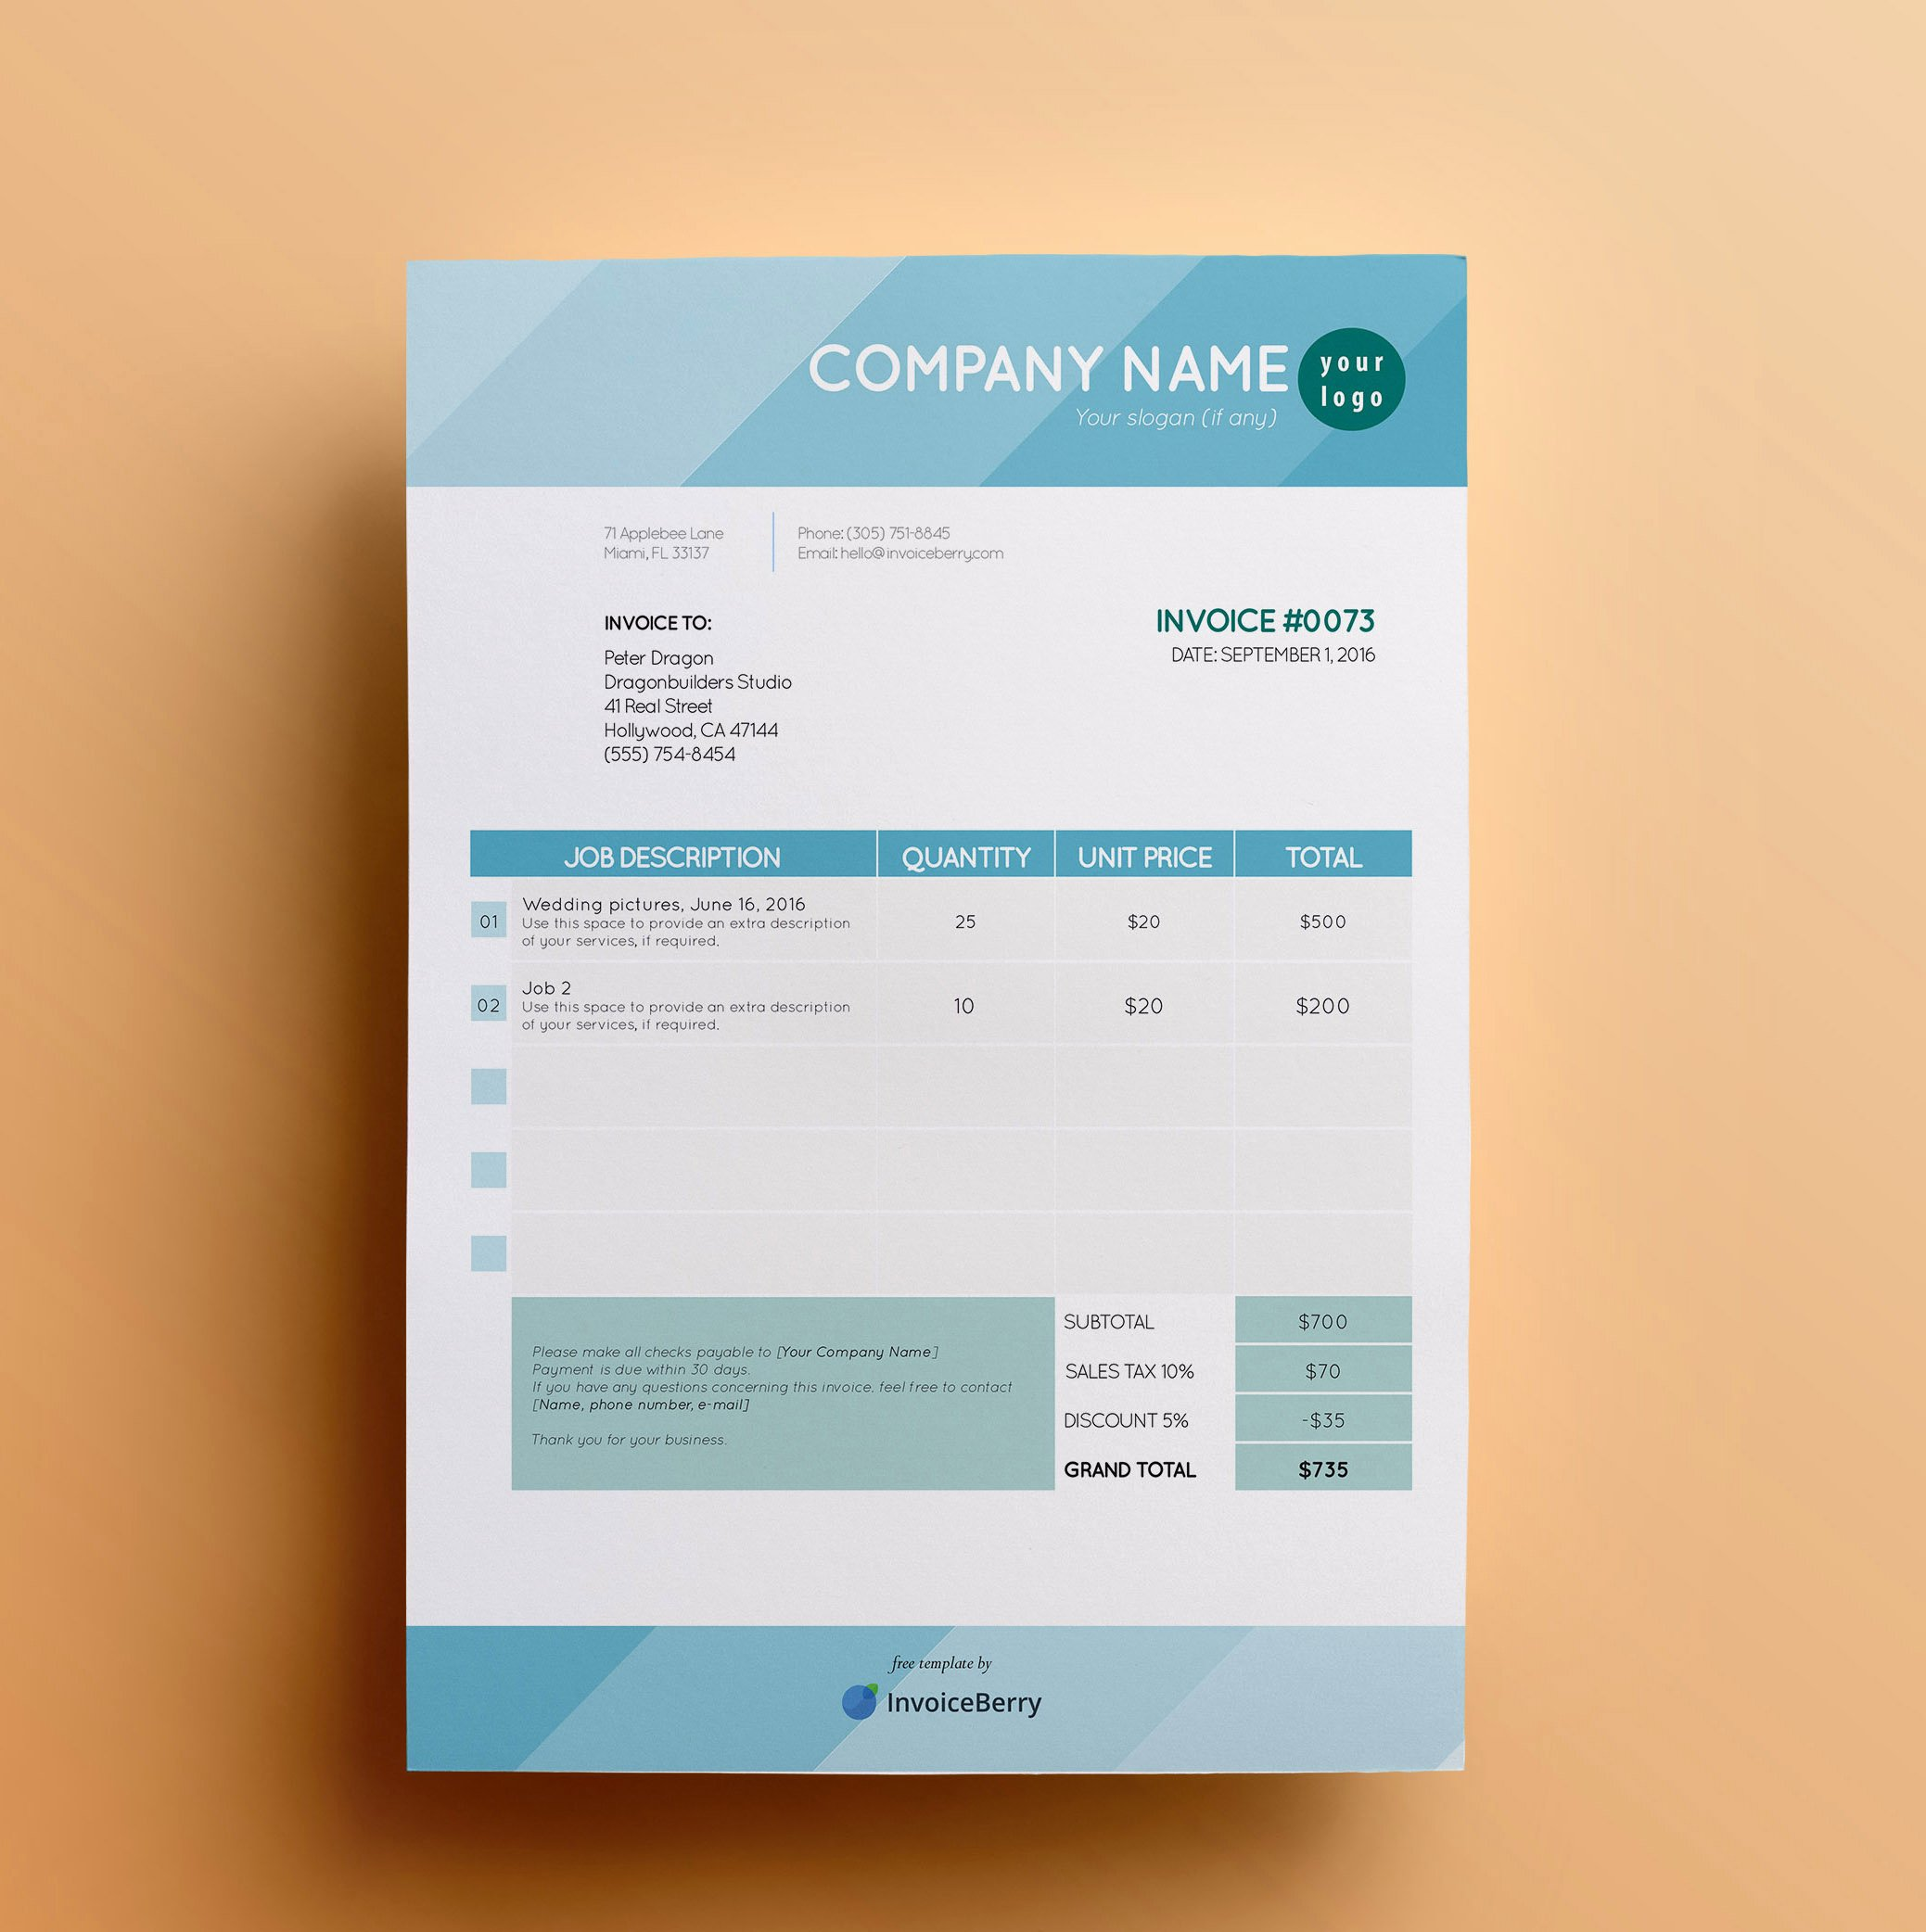 Indesign Invoice Template Free New Free Invoice Templates by Invoiceberry the Grid System